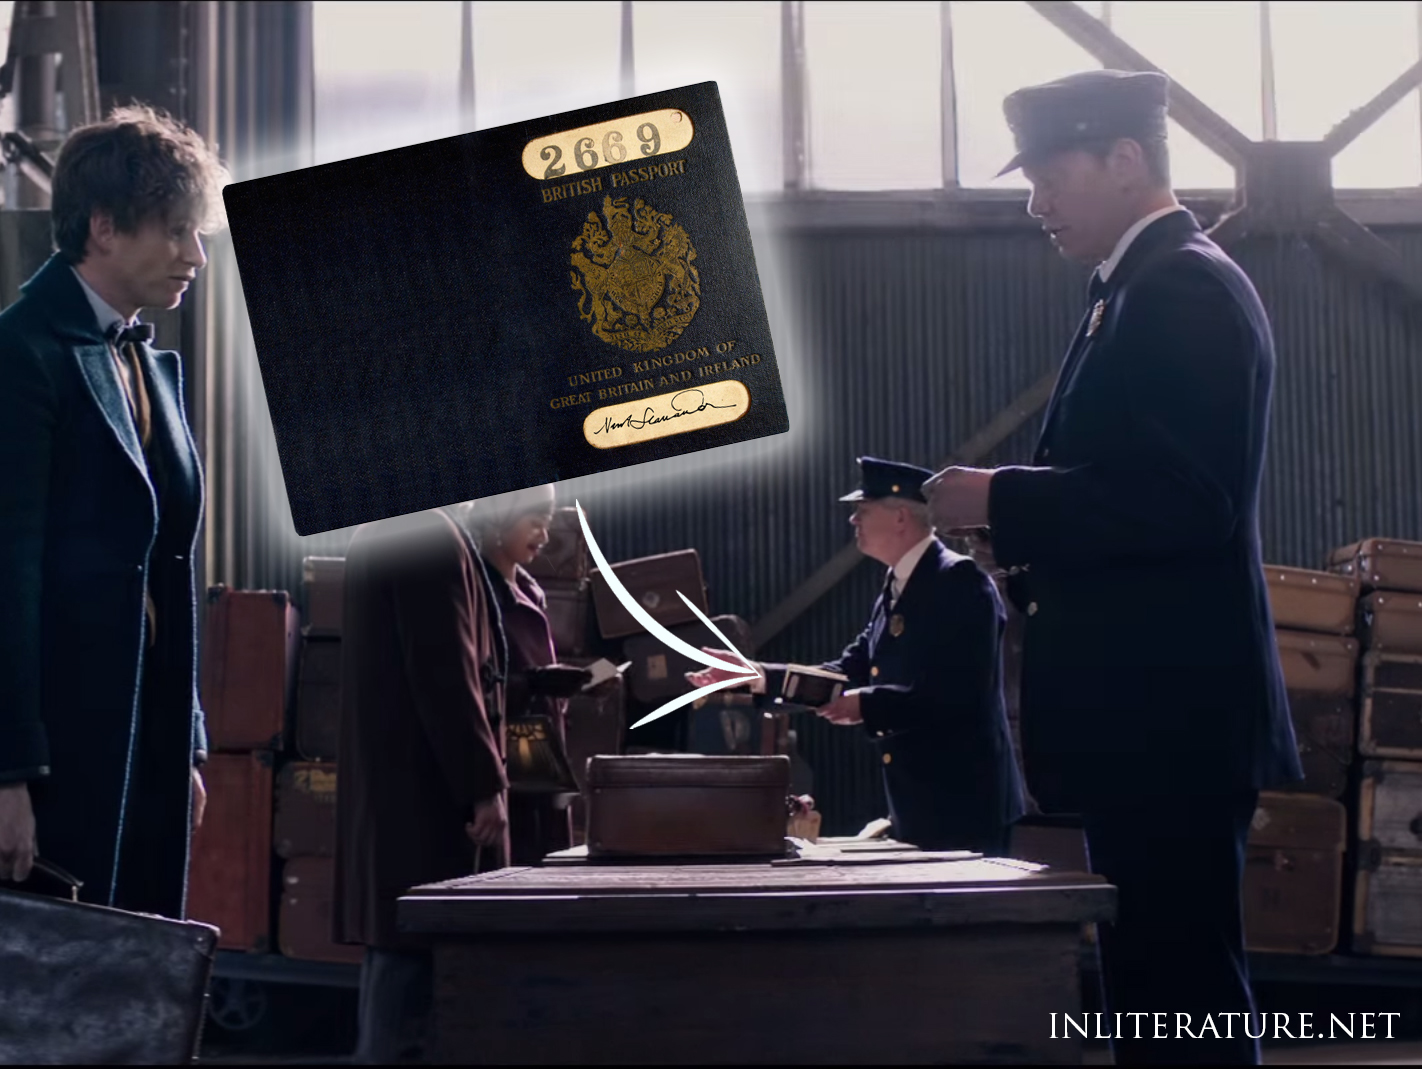 Passport at arrivals in Fantastic Beasts